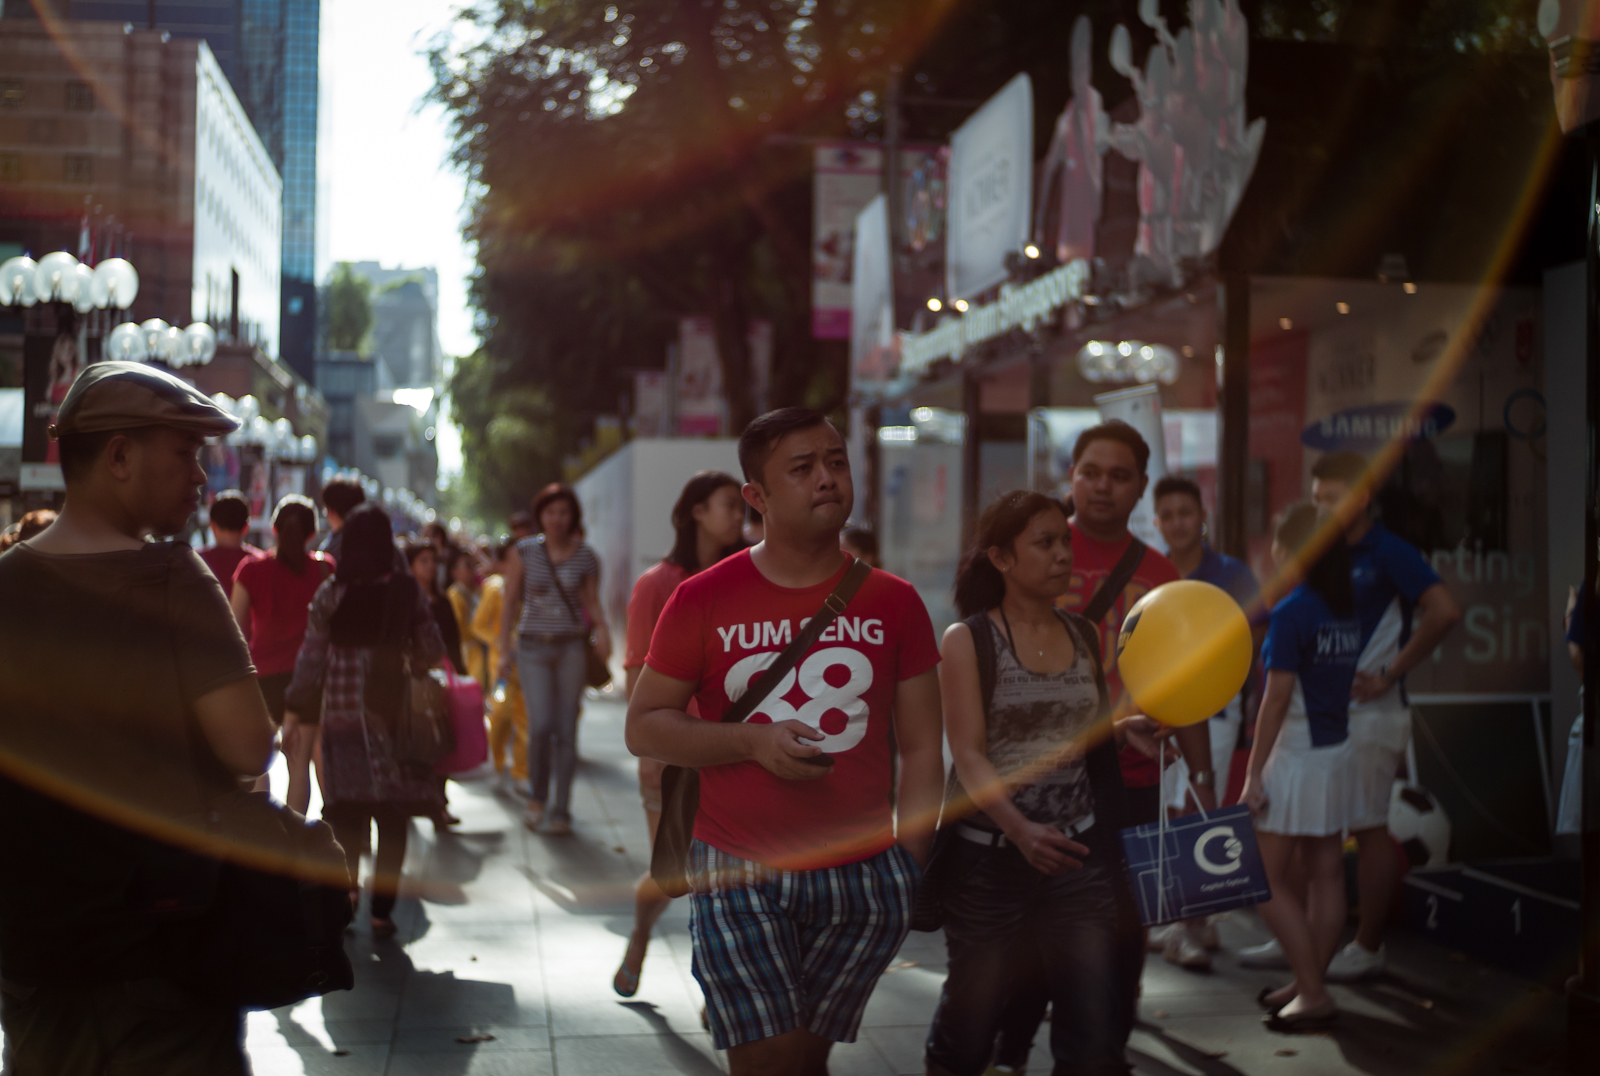 Street scene in Orchard Road with a large lens flare